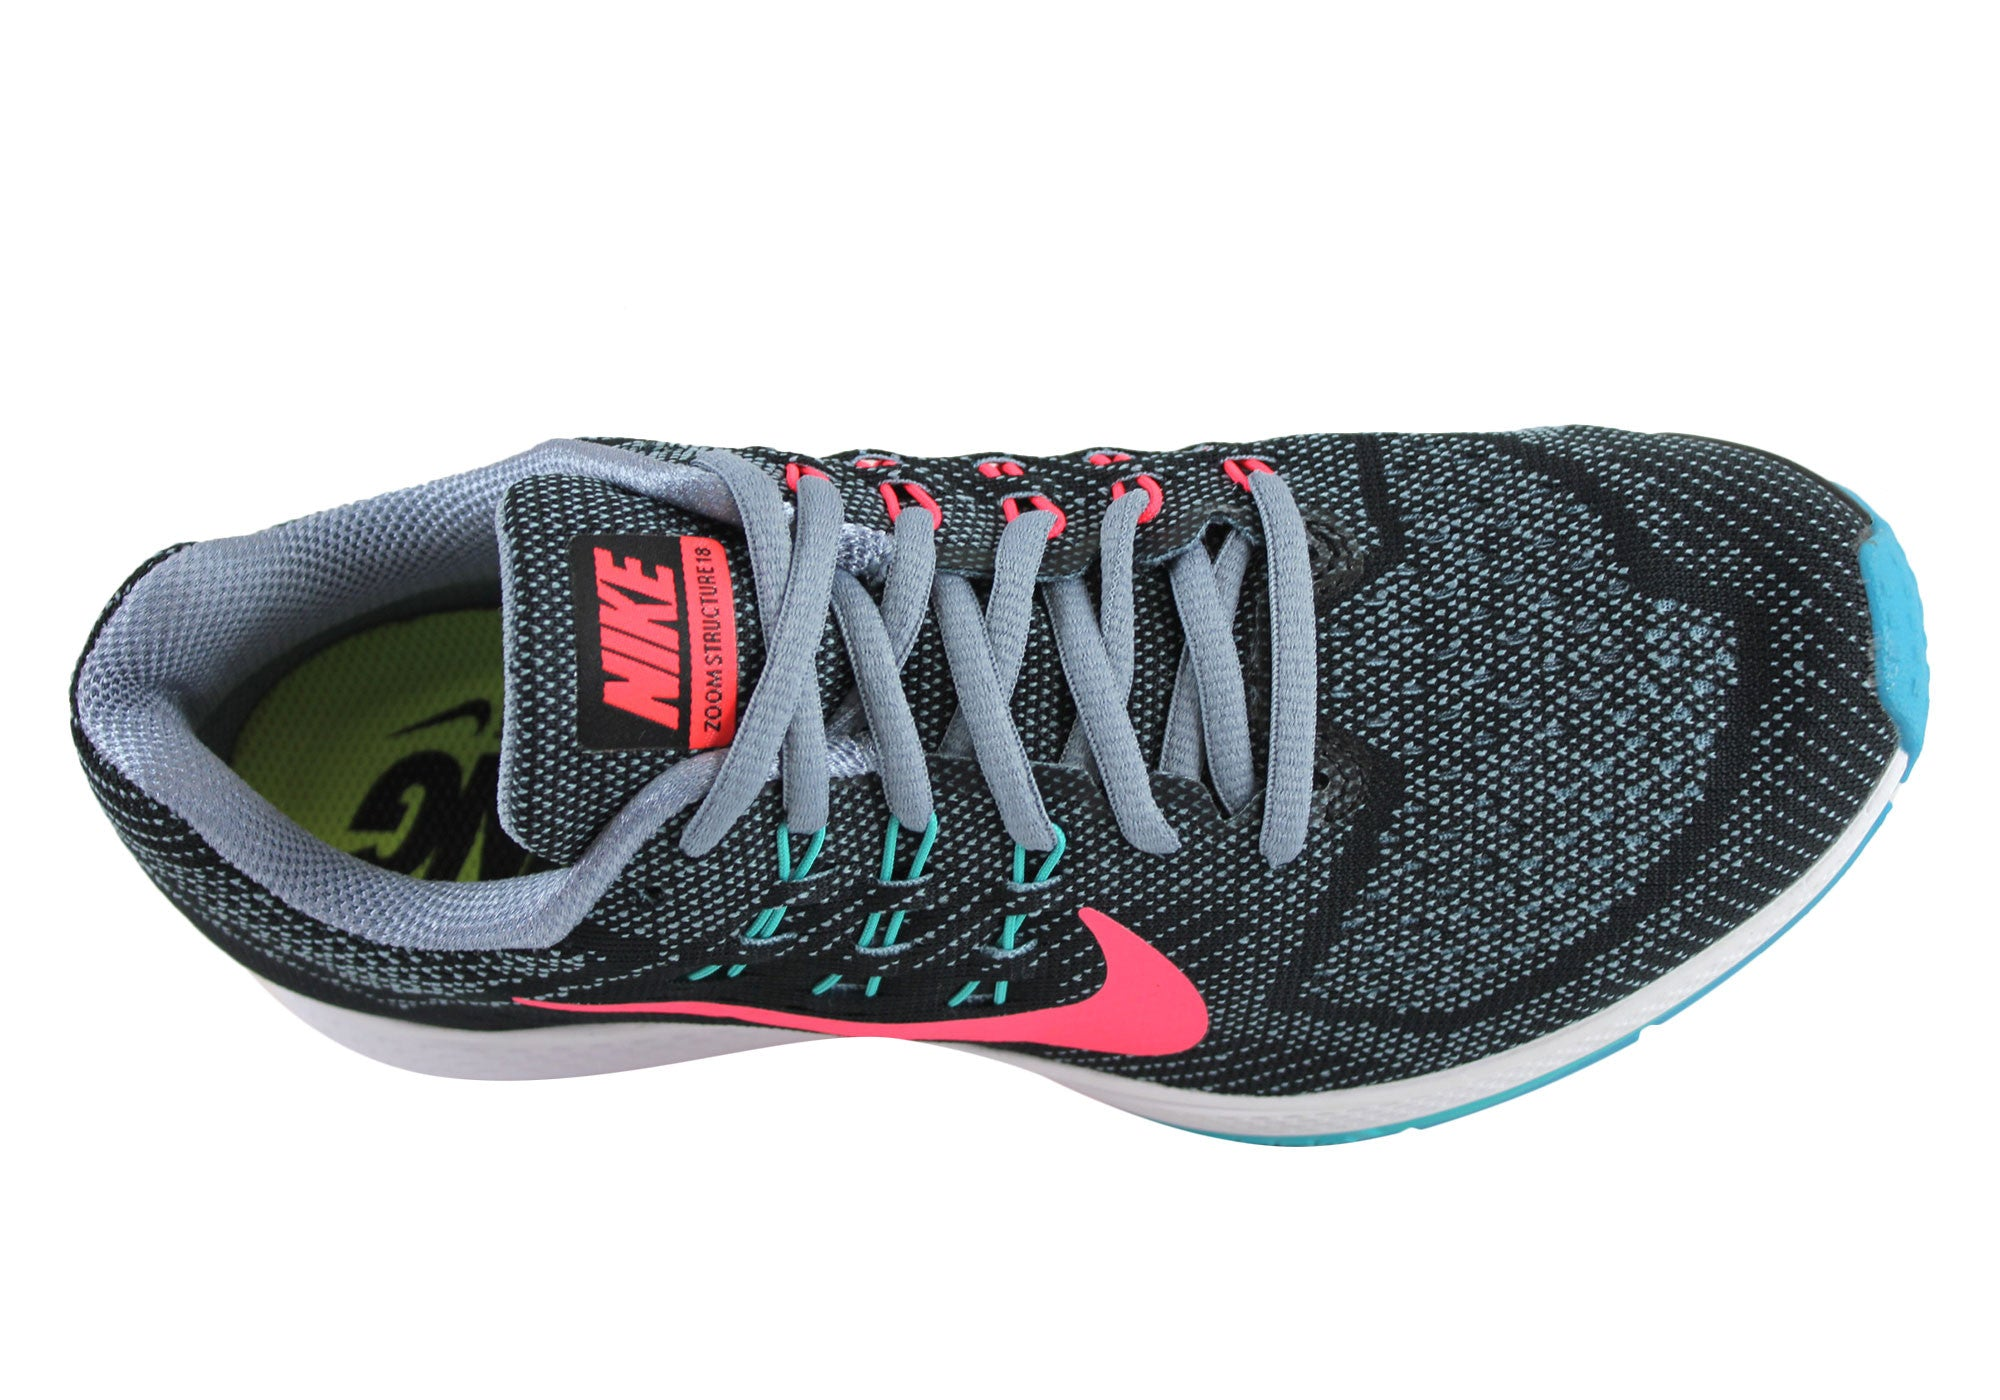 cheap for discount 286d1 61b15 Home Nike Air Zoom Structure 18 Womens Premium Cushioned Running Shoes. Grey Black Pink   Orange Black  Grey Black Pink ...